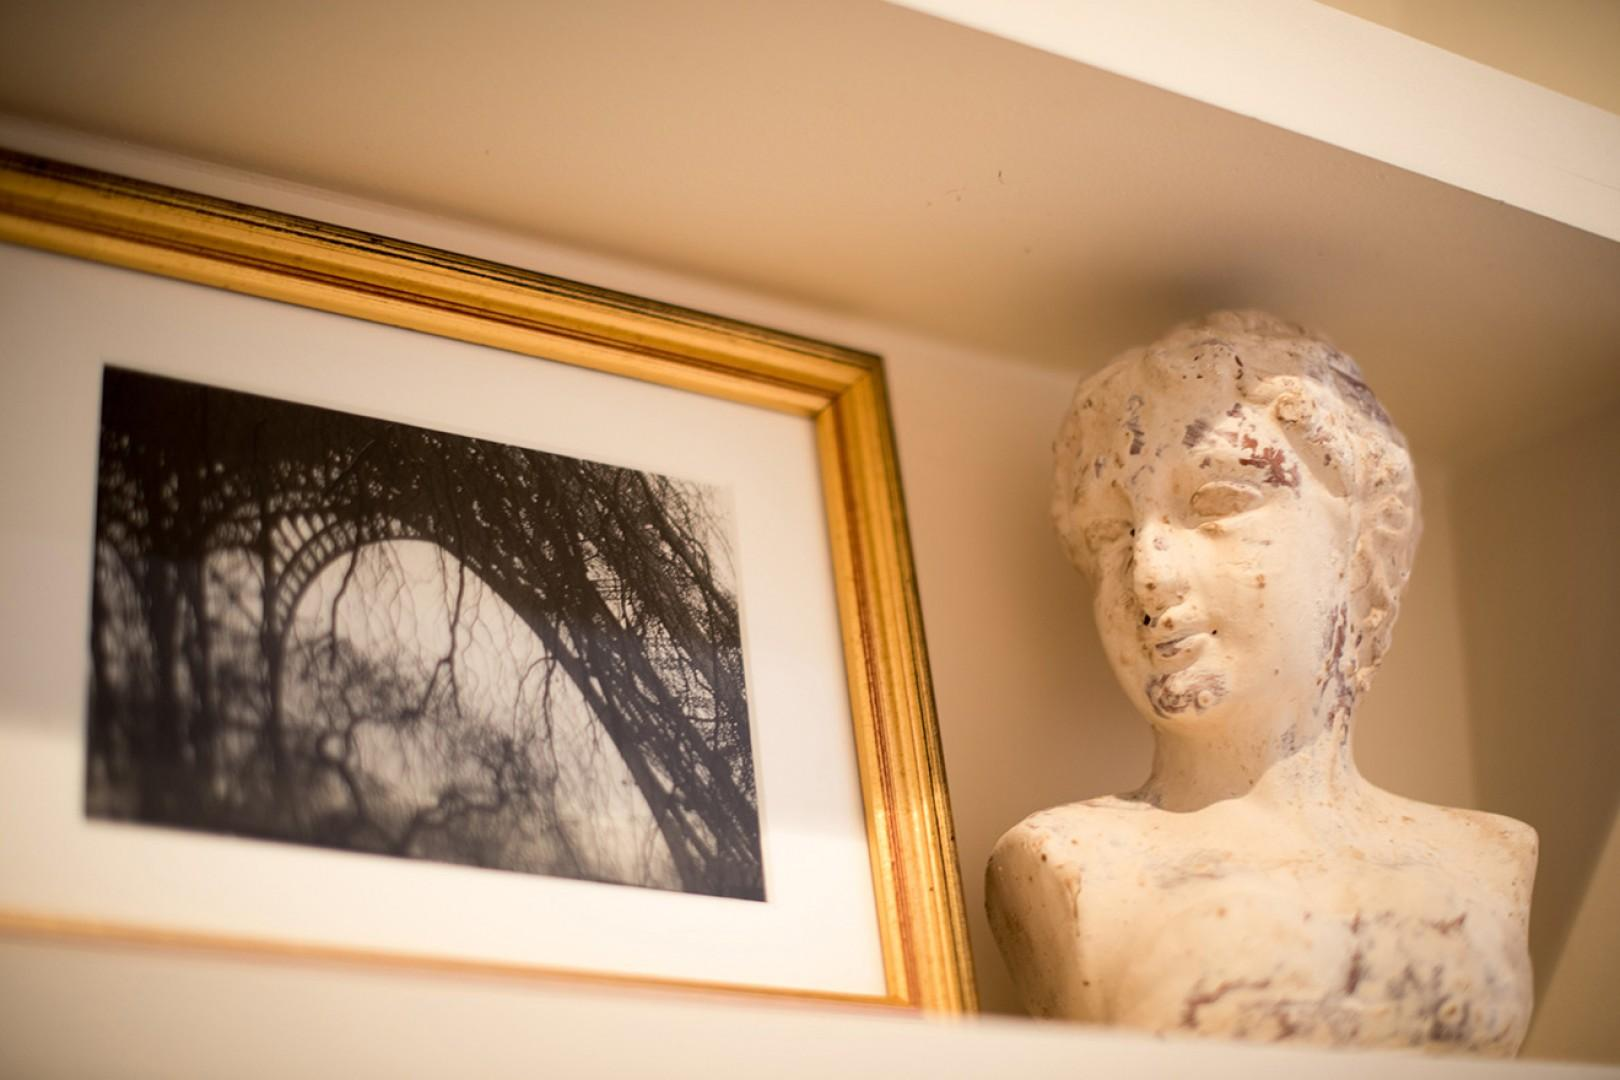 The space has been carefully designed and decorated with an artistic touch.